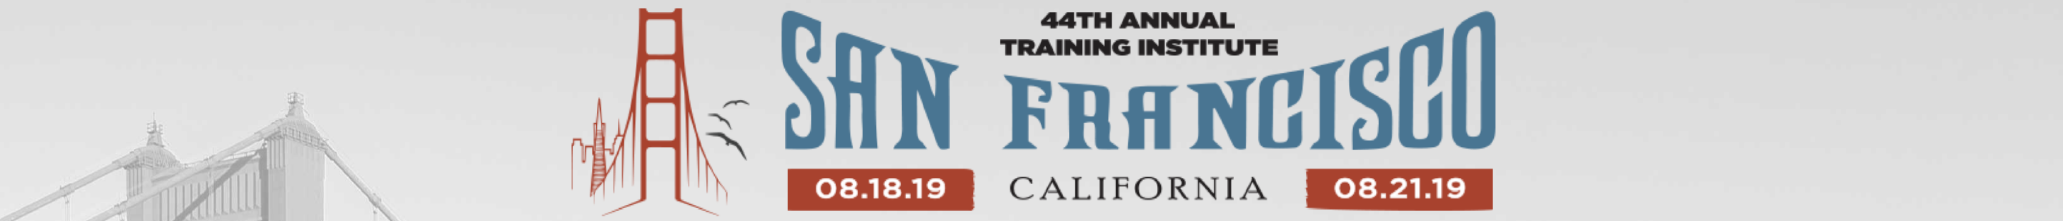 APPA Probabation and Parole Association San Francisco Annual Conference 2019 Narrow